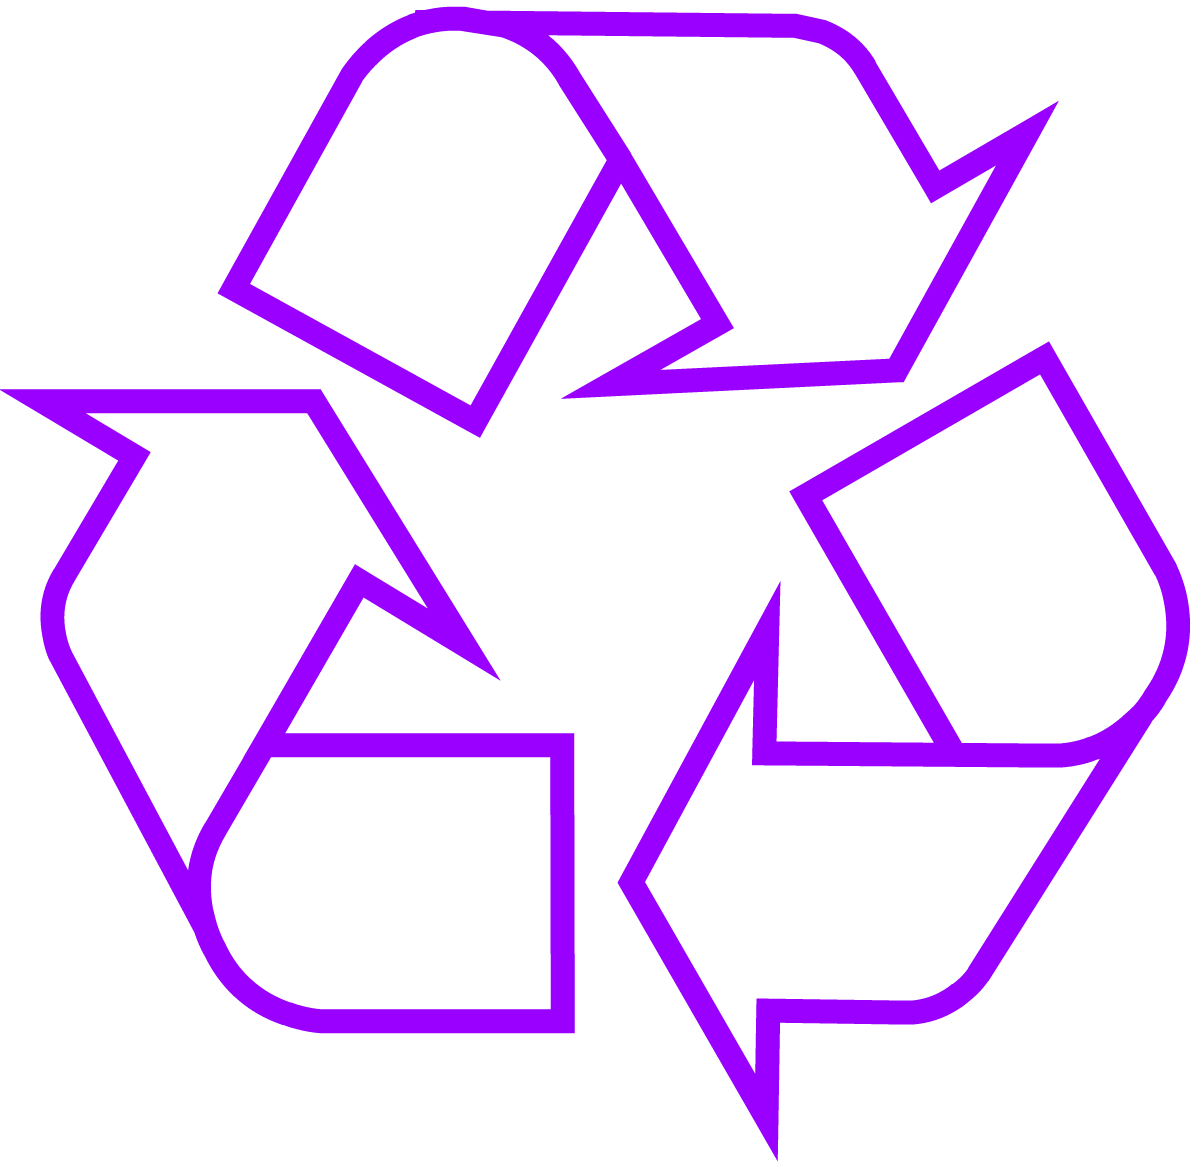 Download Recycling Symbol The Original Recycle Logo Recycle Symbol Recycle Logo Recycle Sign